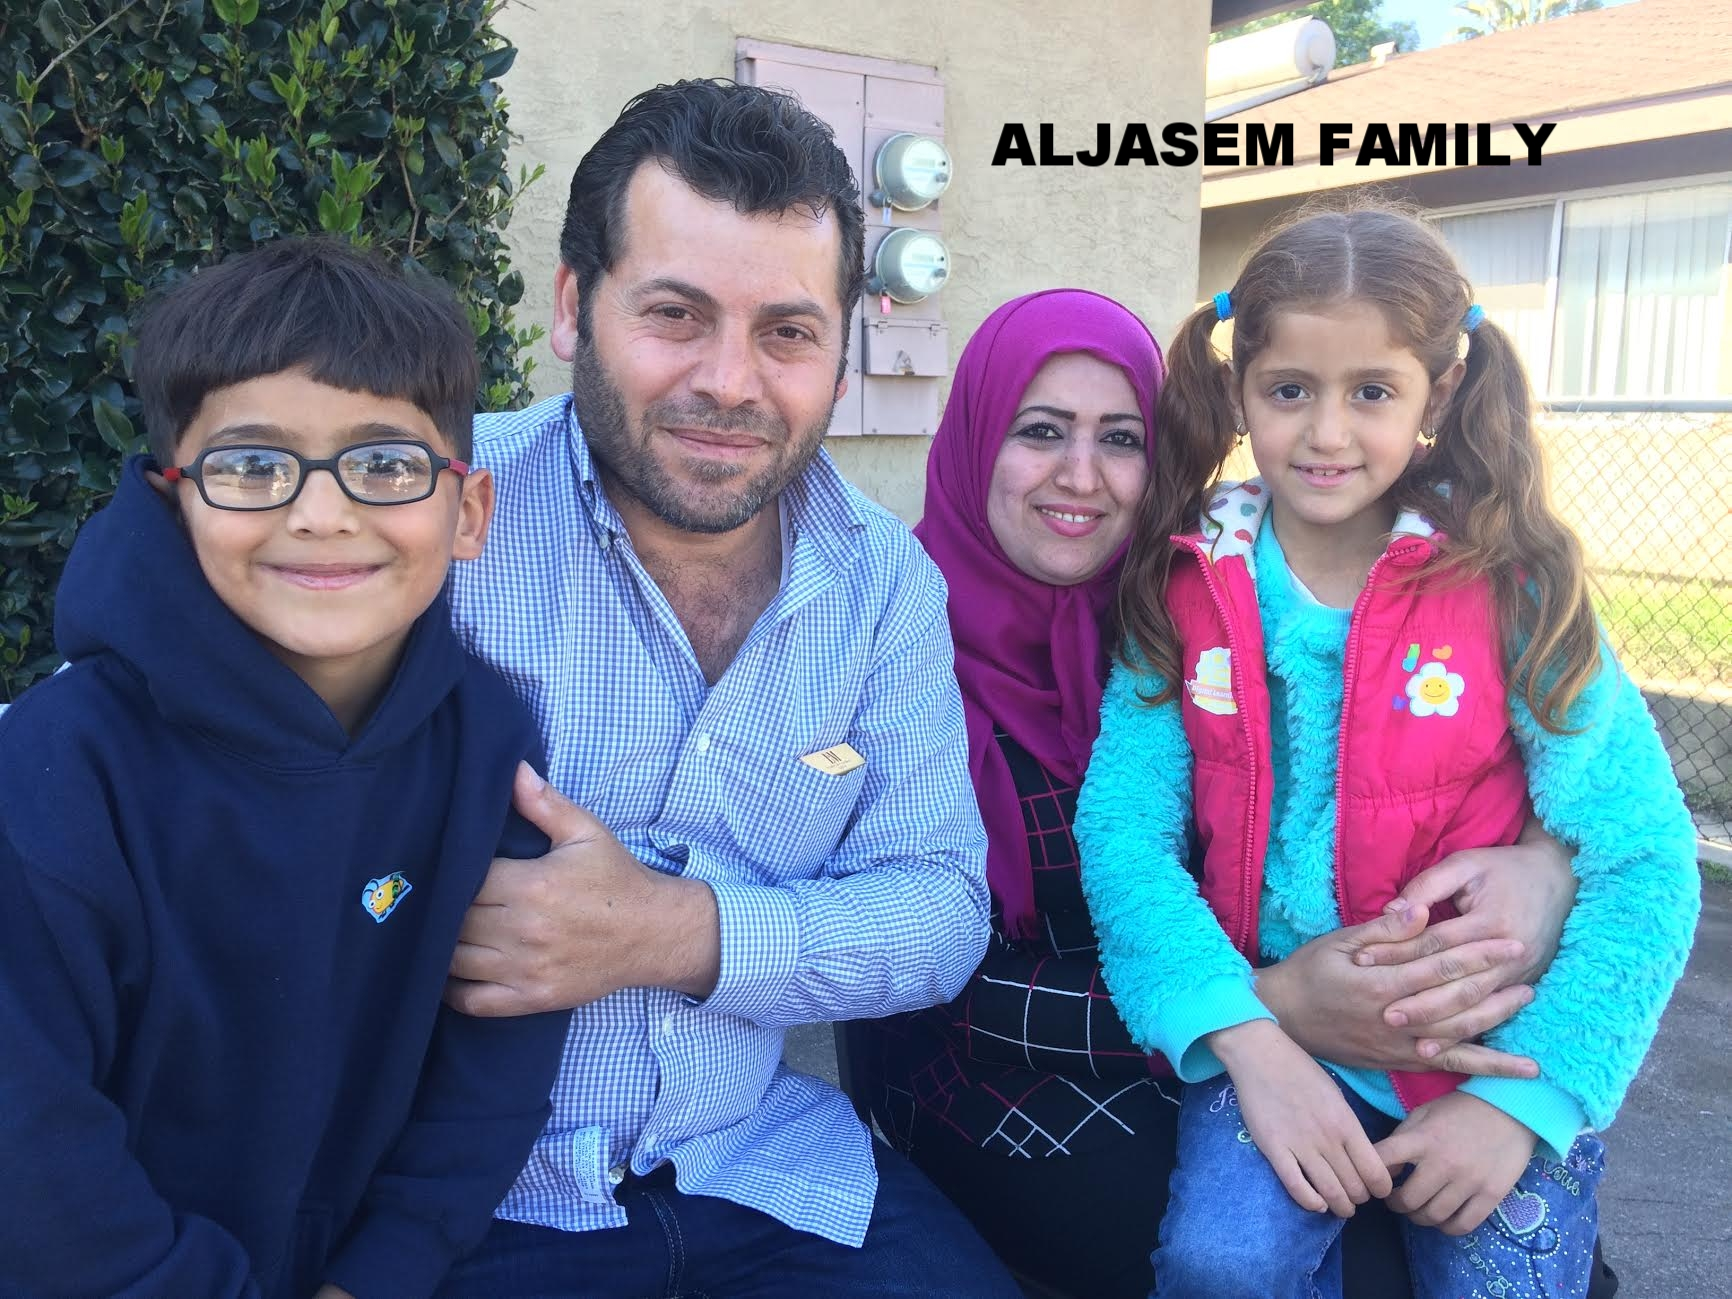 Syrian refugee family that arrived in southern California in late January. Dad, mom, and four kids ages 7 through 13.